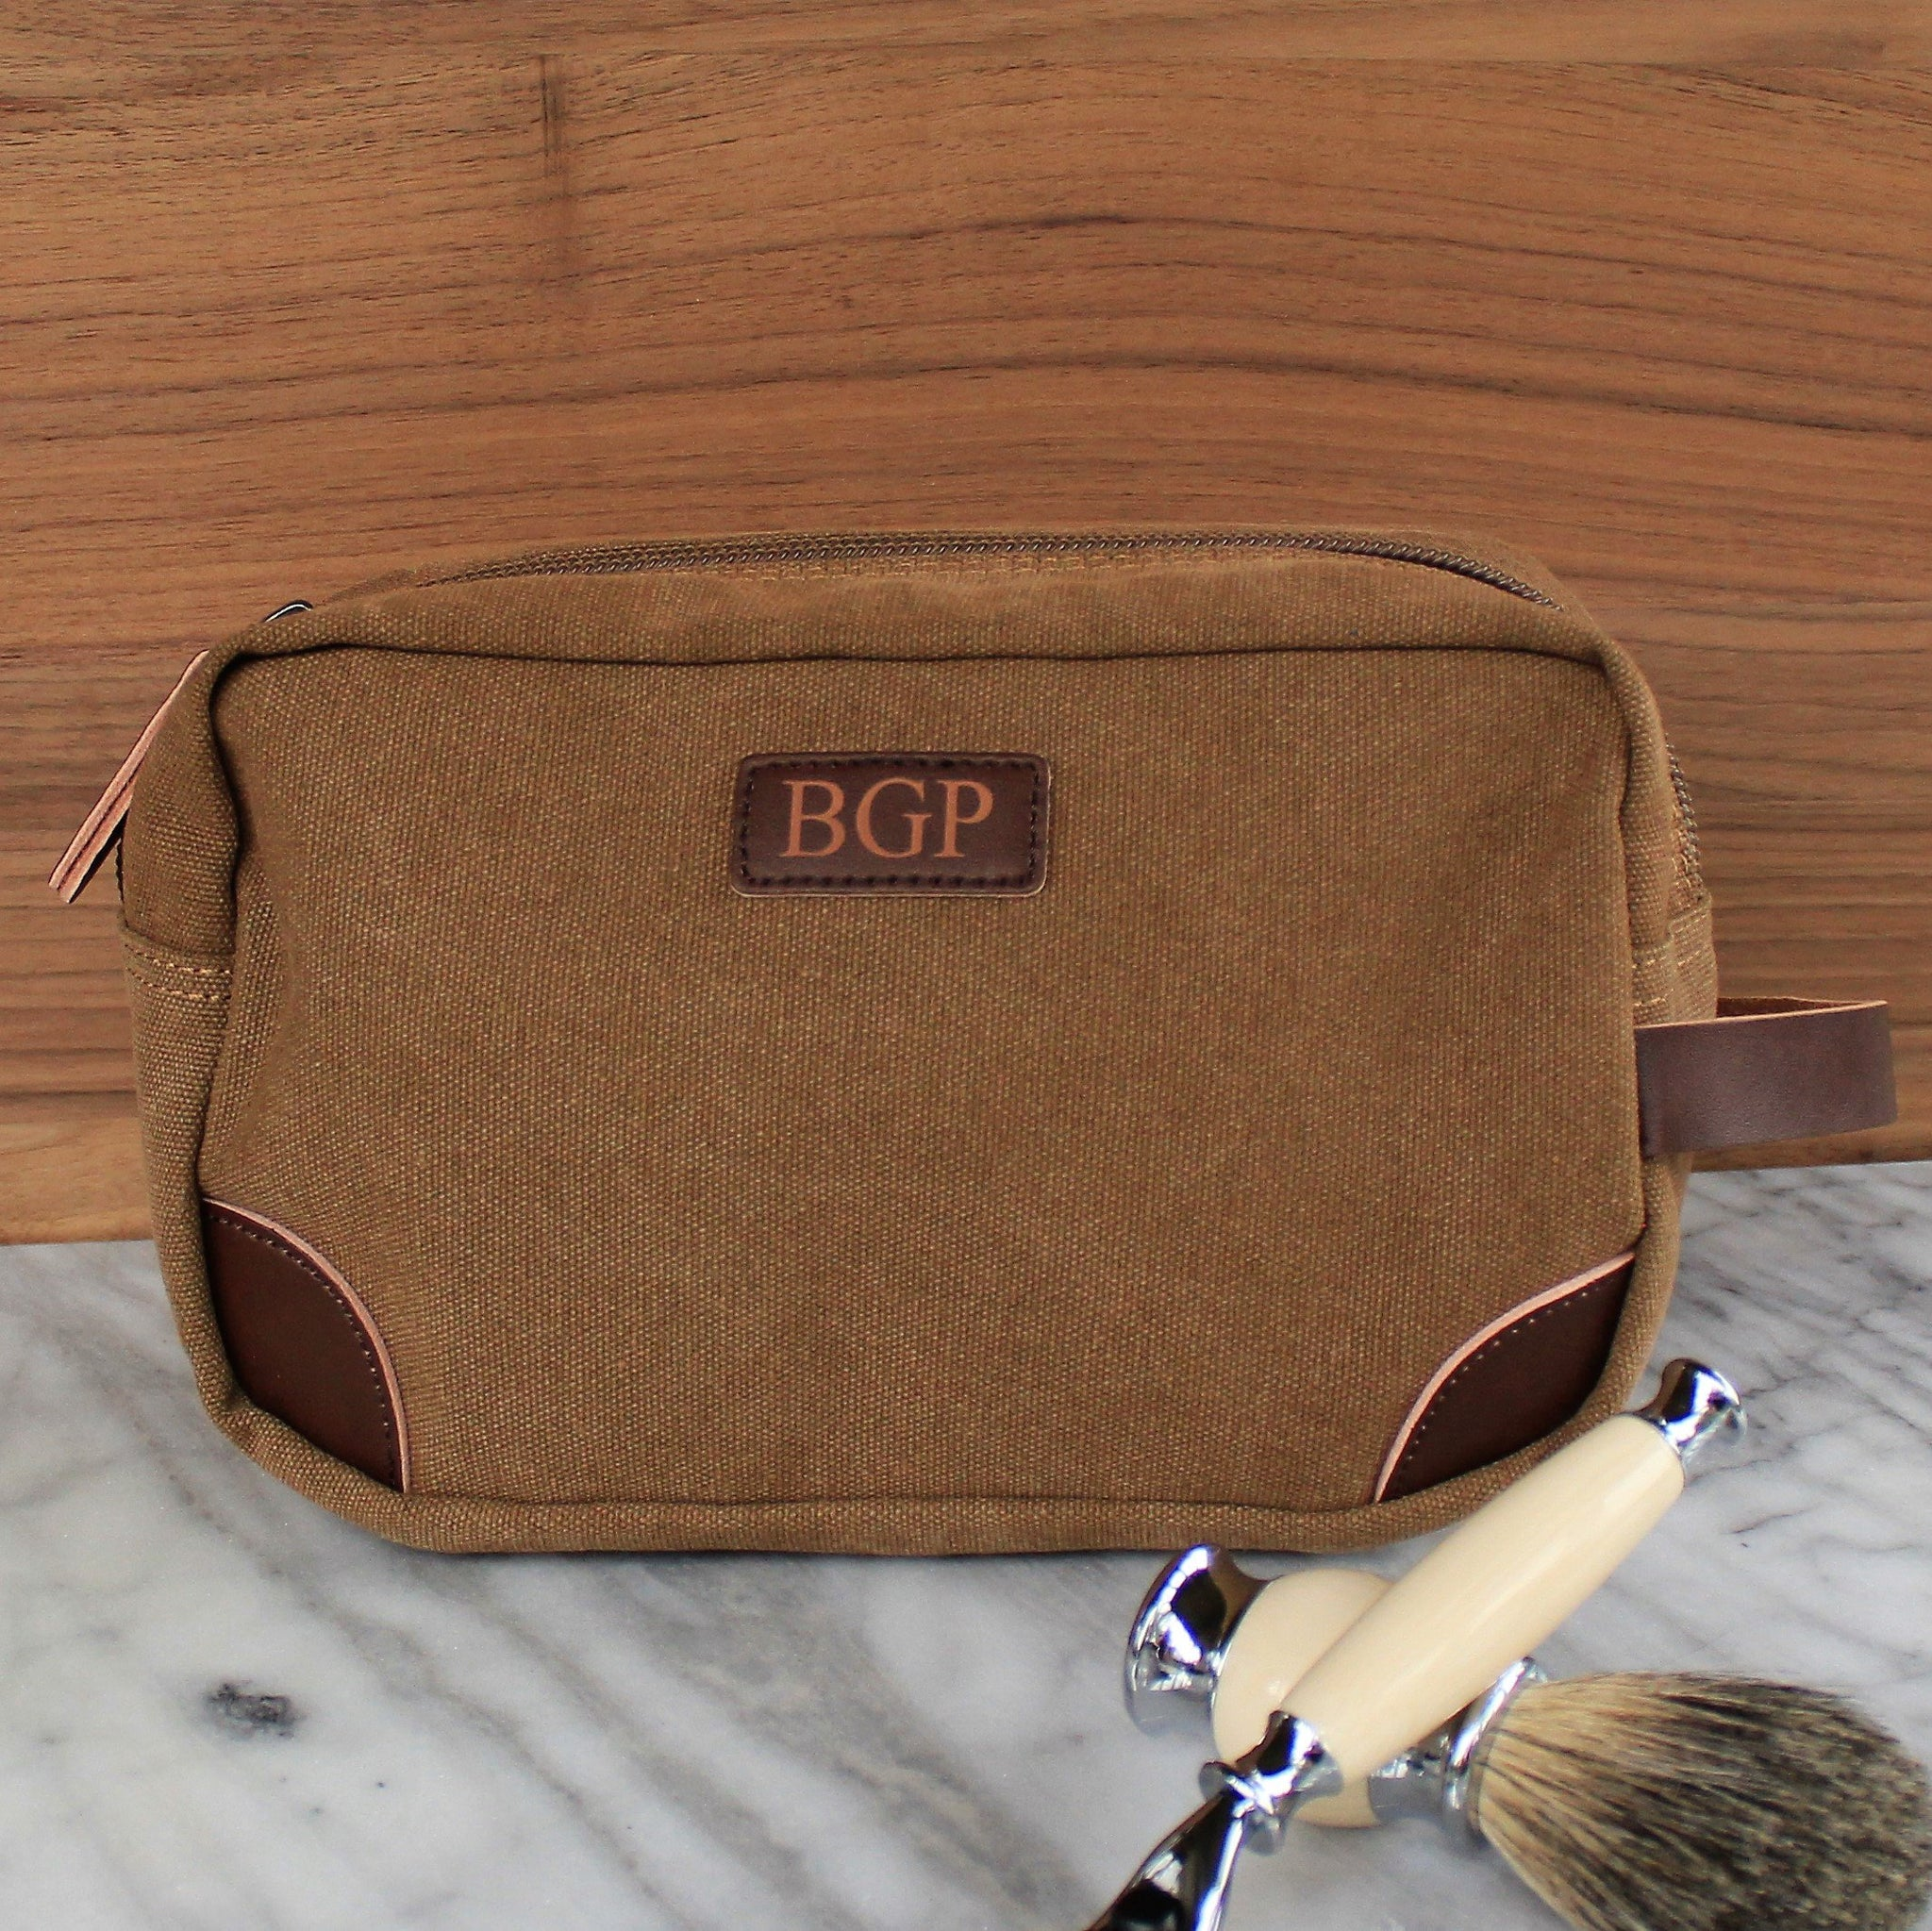 028134308923 The Teton - Groosmen Gift, Travel Size Toiletry Bag - Personalized Canvas  and Genuine Leather Dopp Kit, Groomsman, Best Man, Usher, Dad